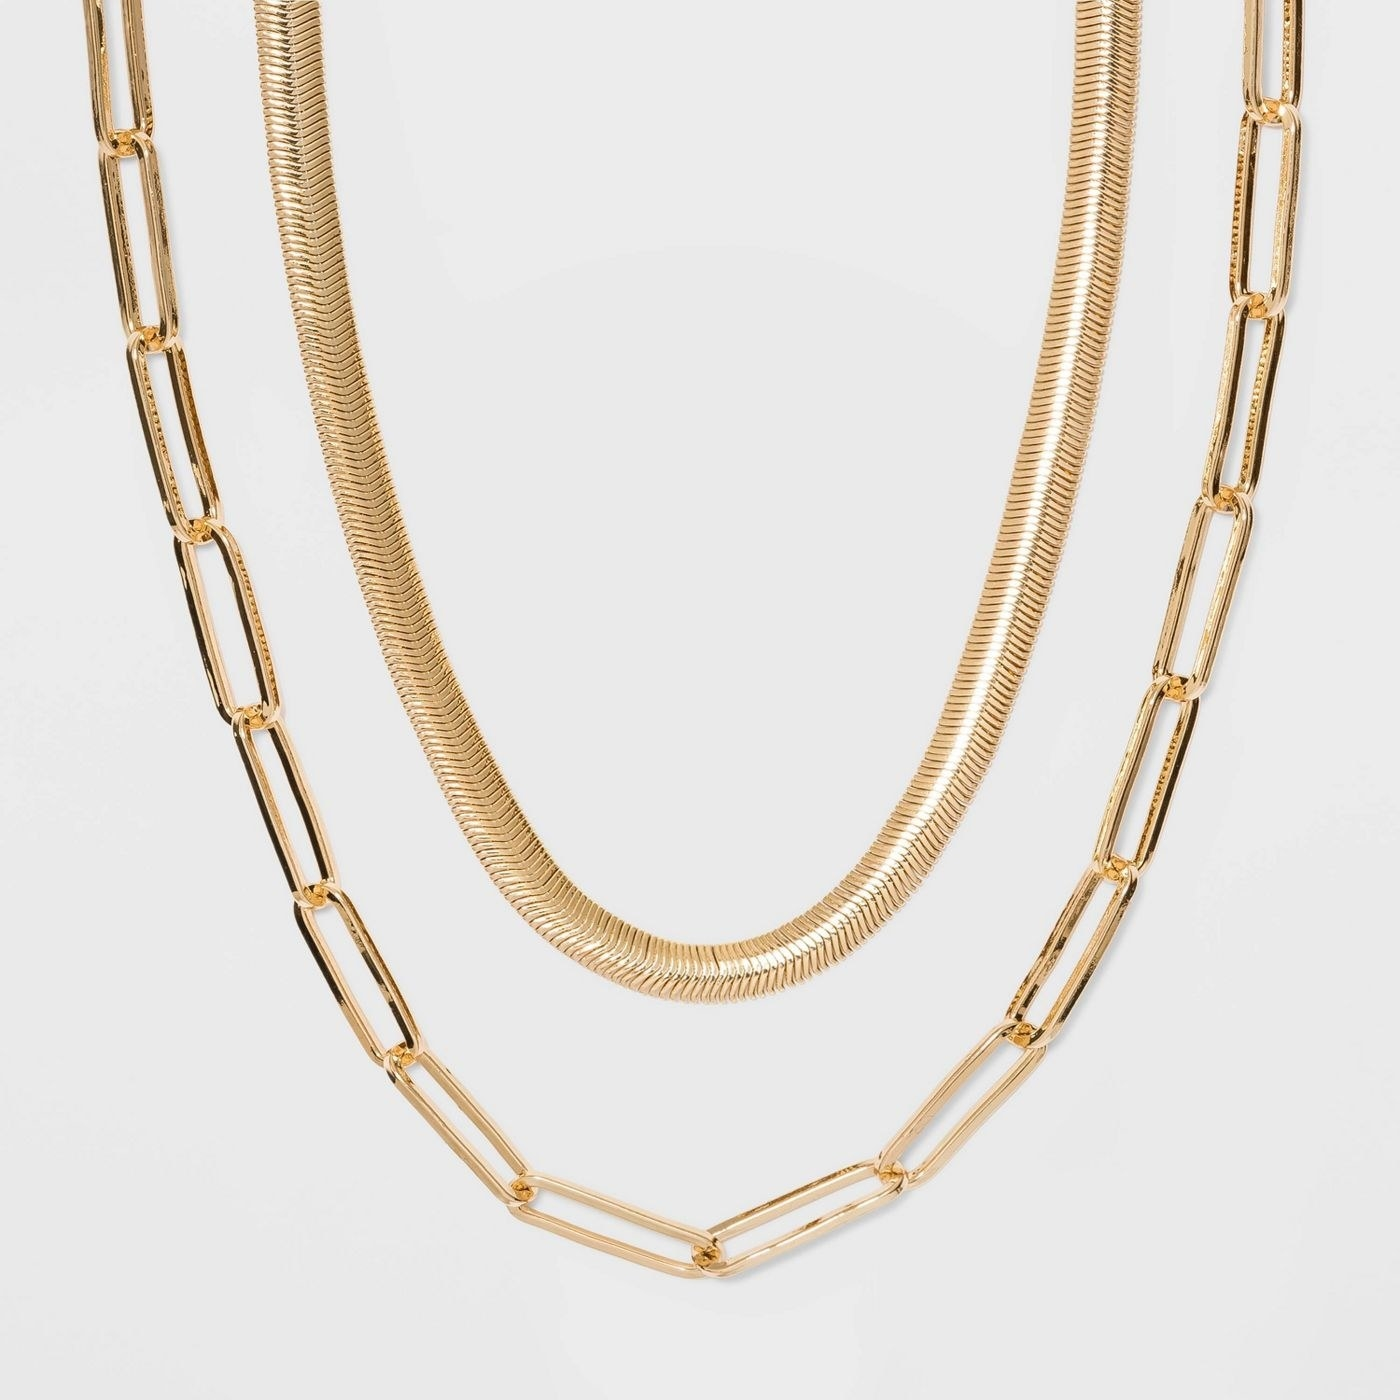 Gold chain necklace and shorter gold necklace together